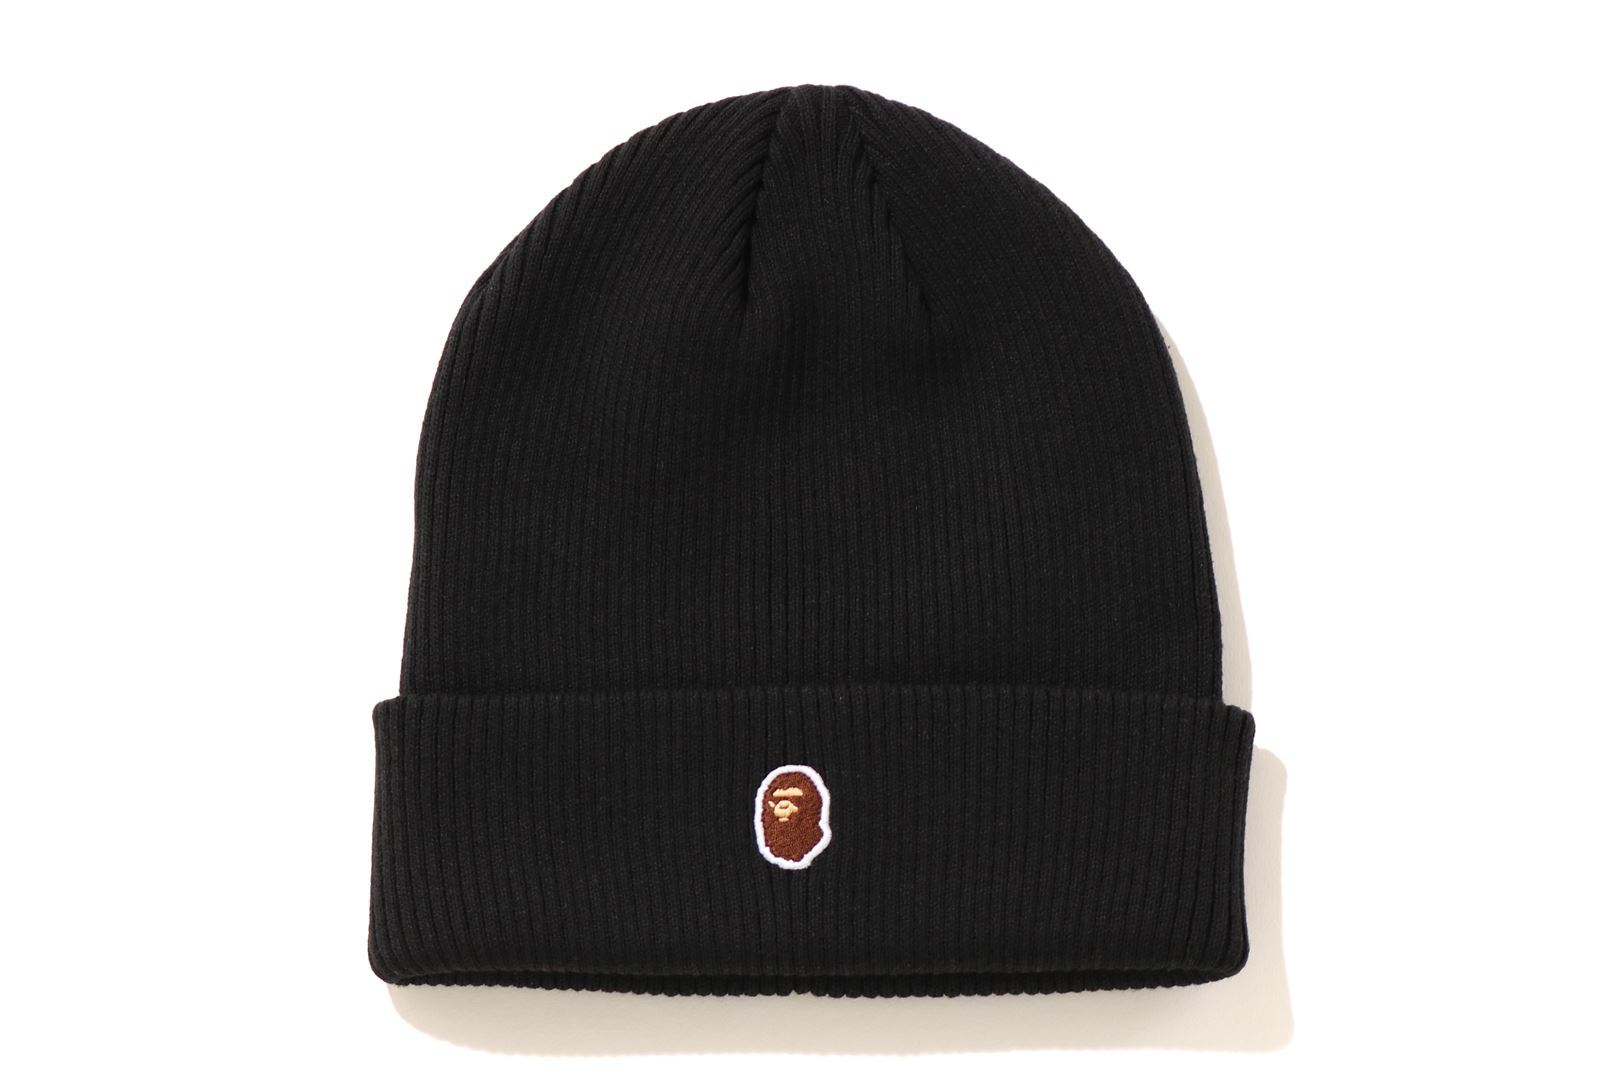 APE HEAD ONE POINT KNIT CAP_a0174495_16194615.jpg